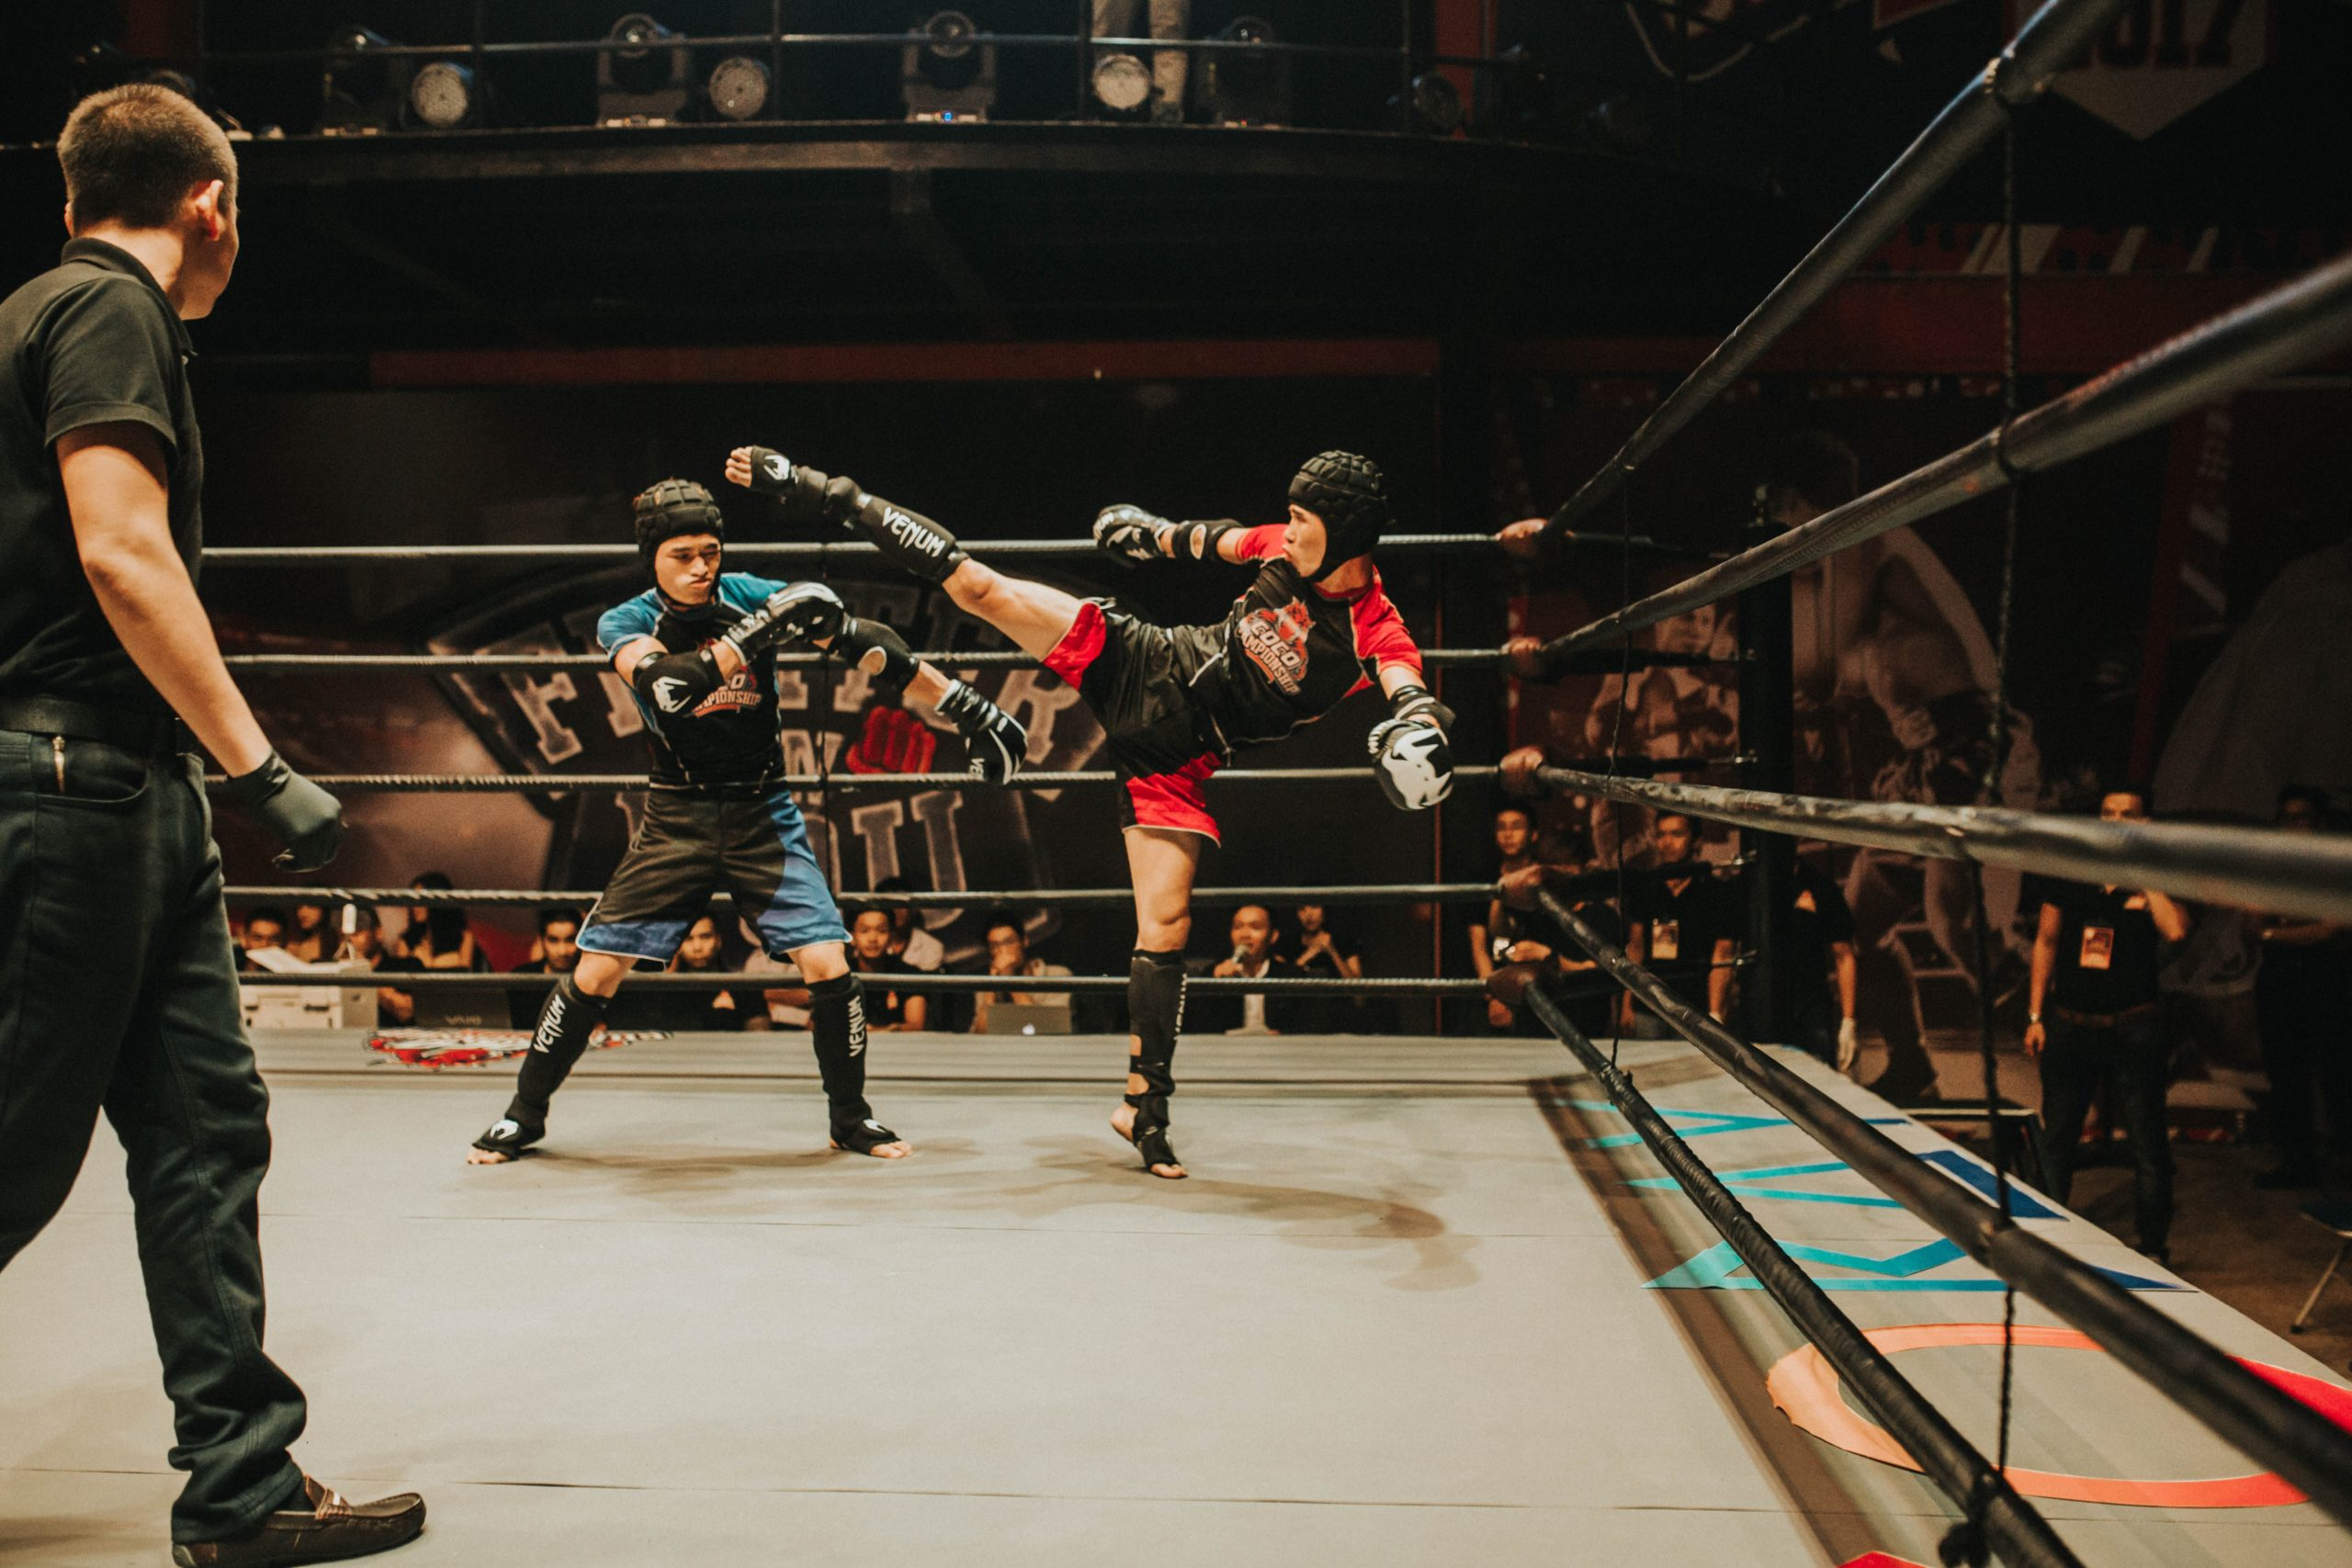 Kickboxing: Equipment, Rules And All About The Popular Game